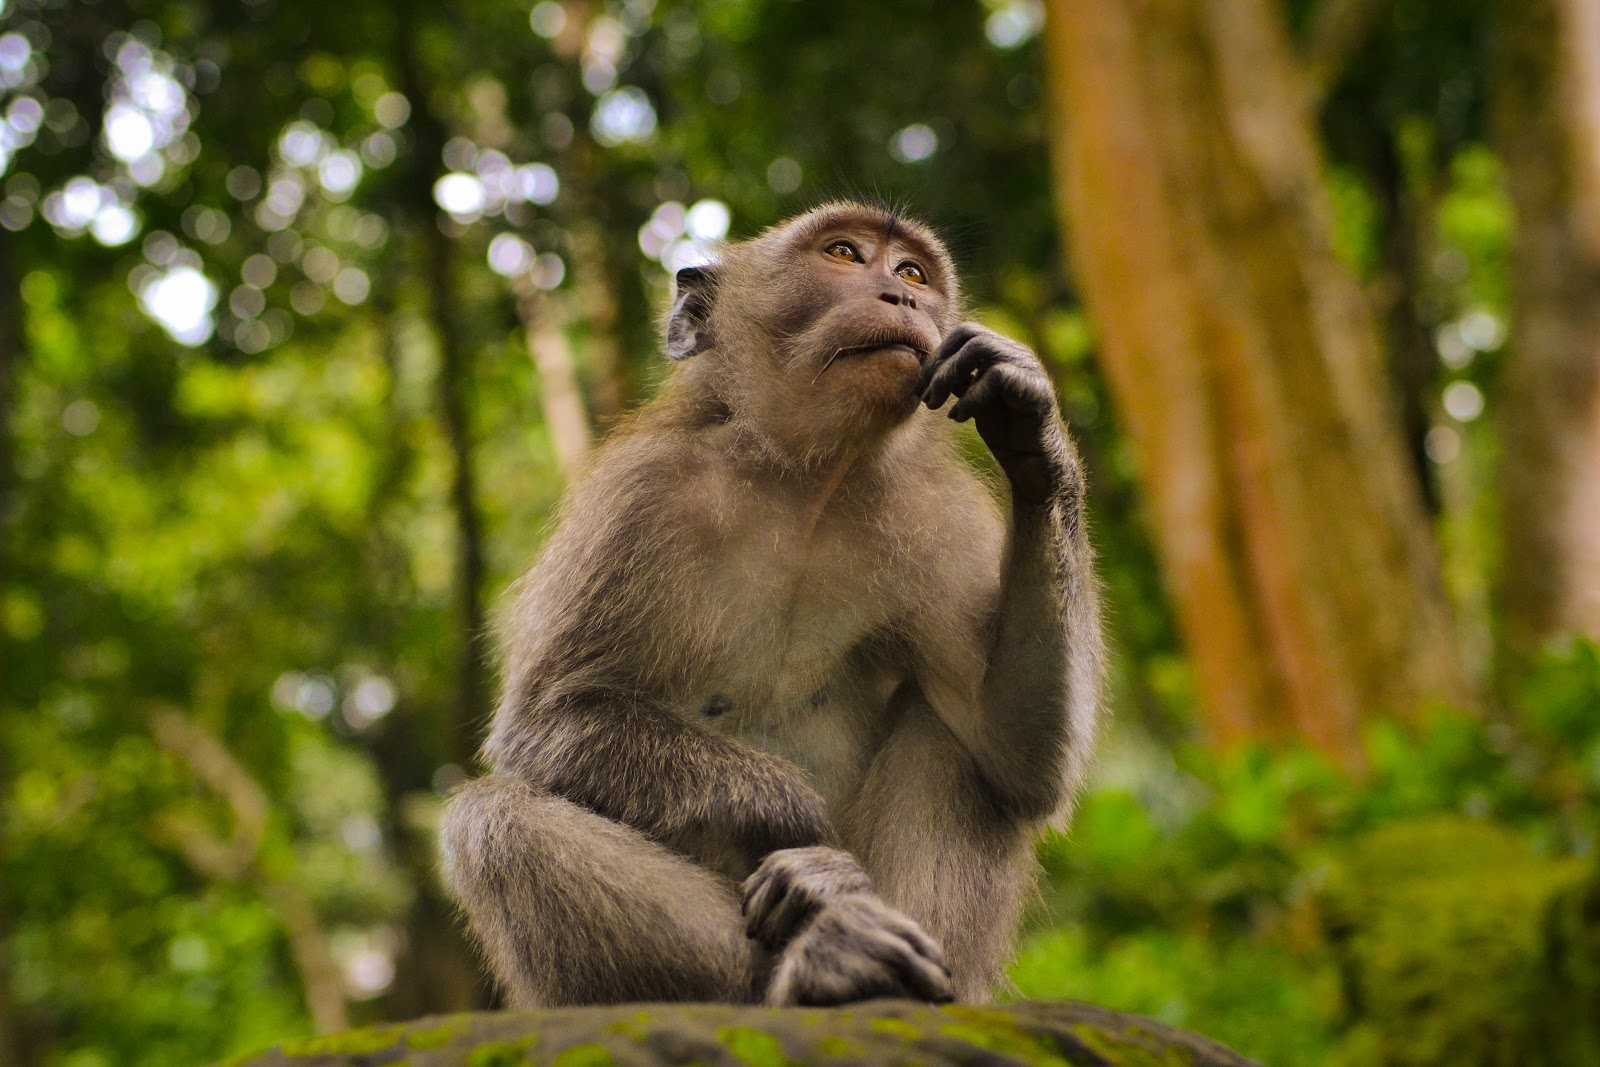 A monkey in the forest thinking with left hand on chin about our wants versus our needs.